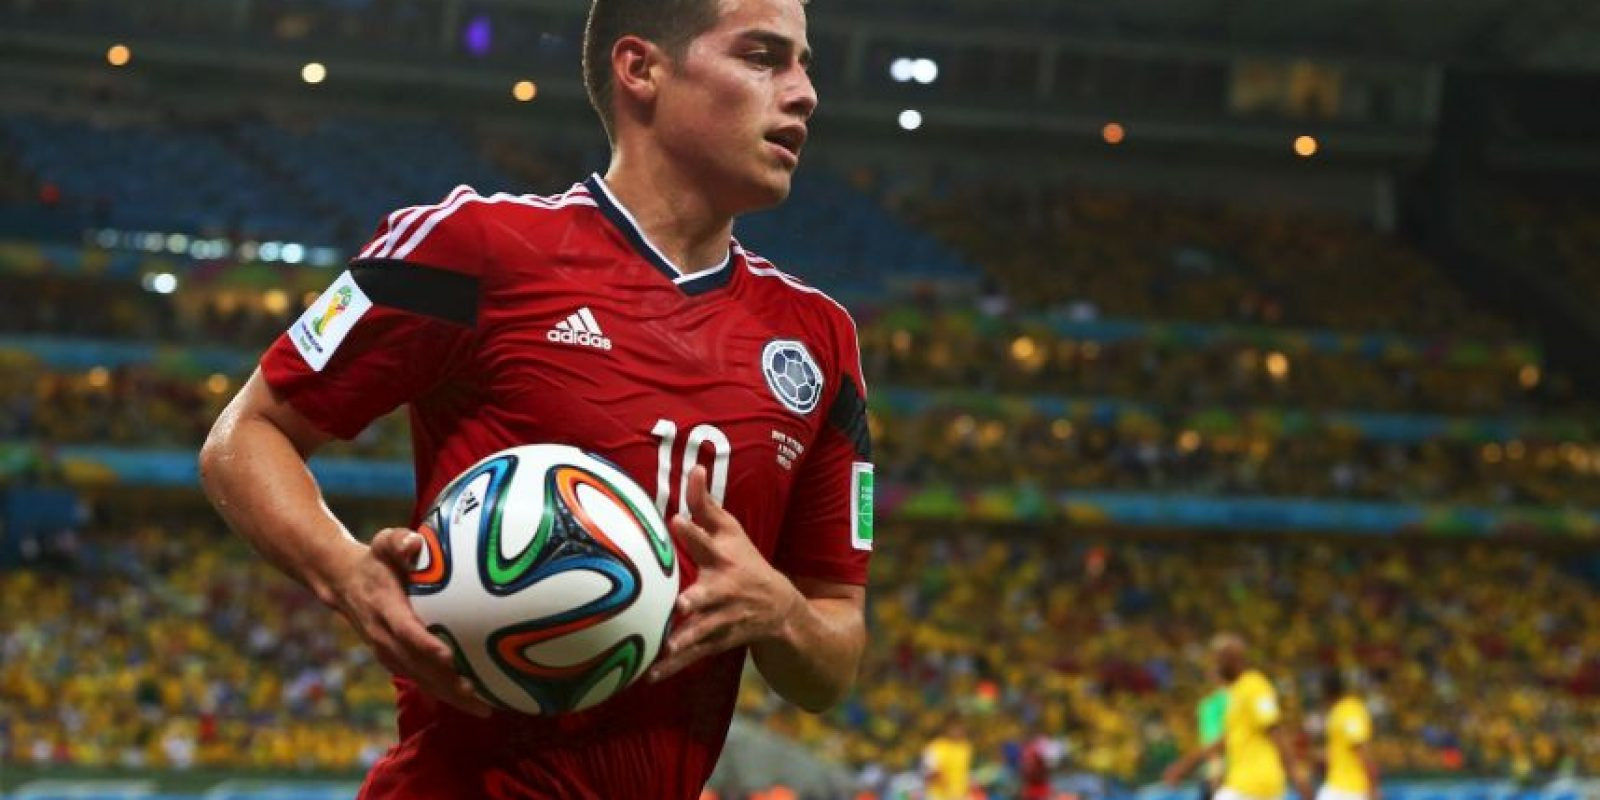 10. Colombia recupera para este partido a James Rodríguez, su referente Foto: Getty Images